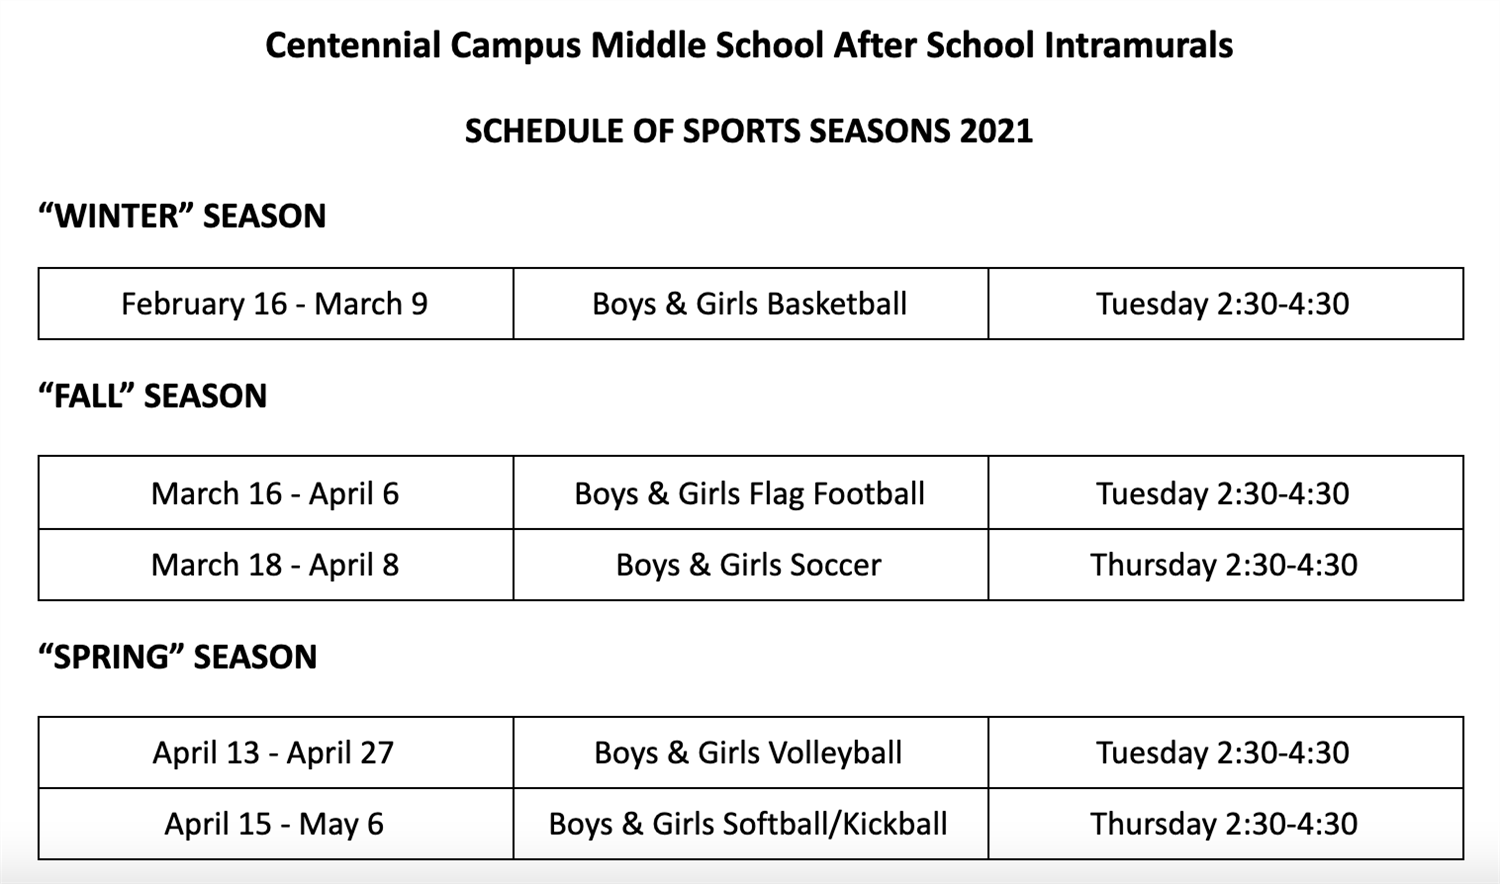 Intramurals for Plan B Students